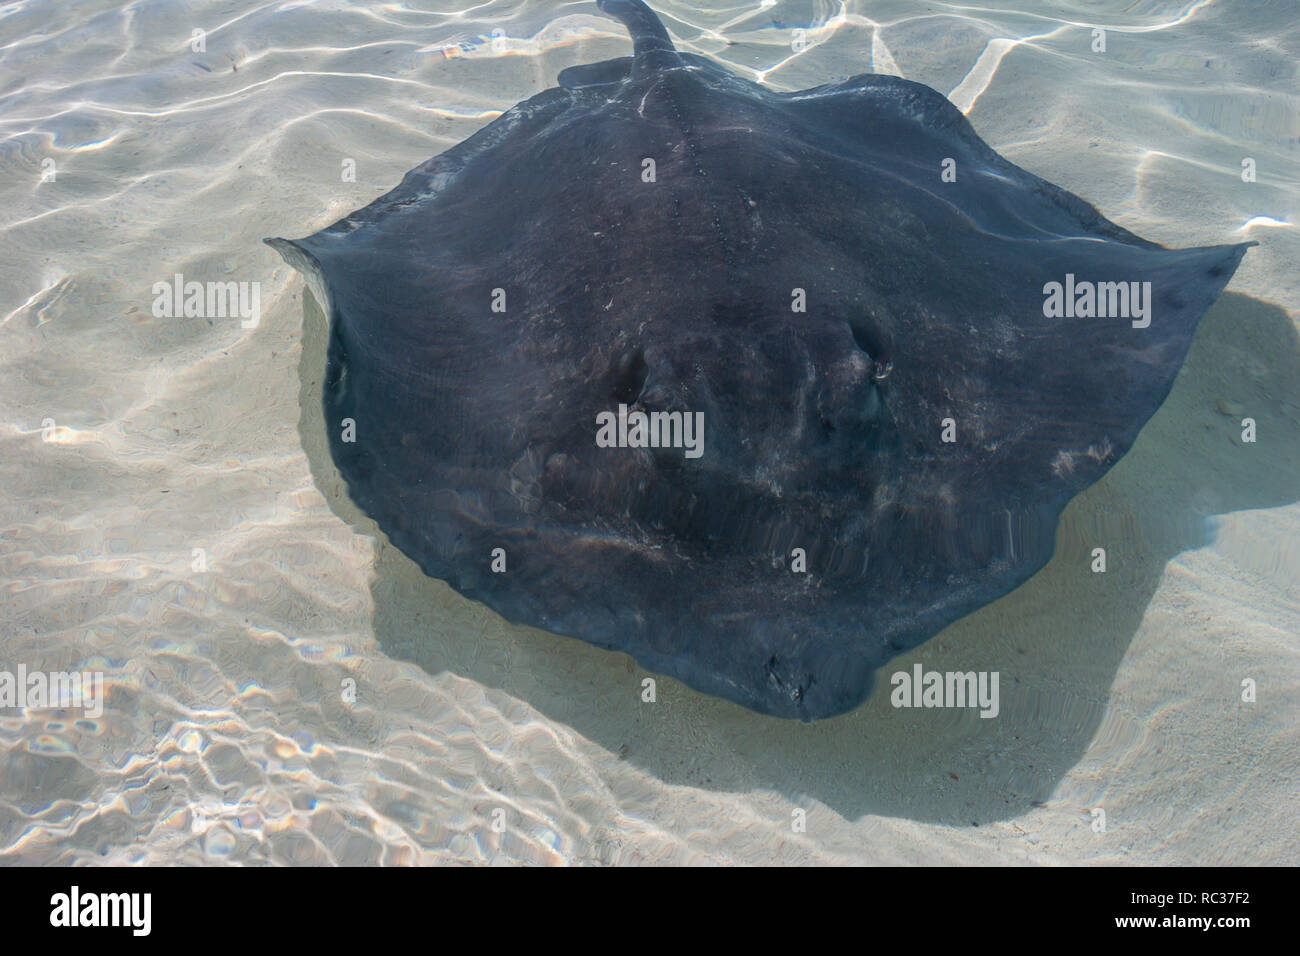 Stingrays fish in the shallow water. - Stock Image